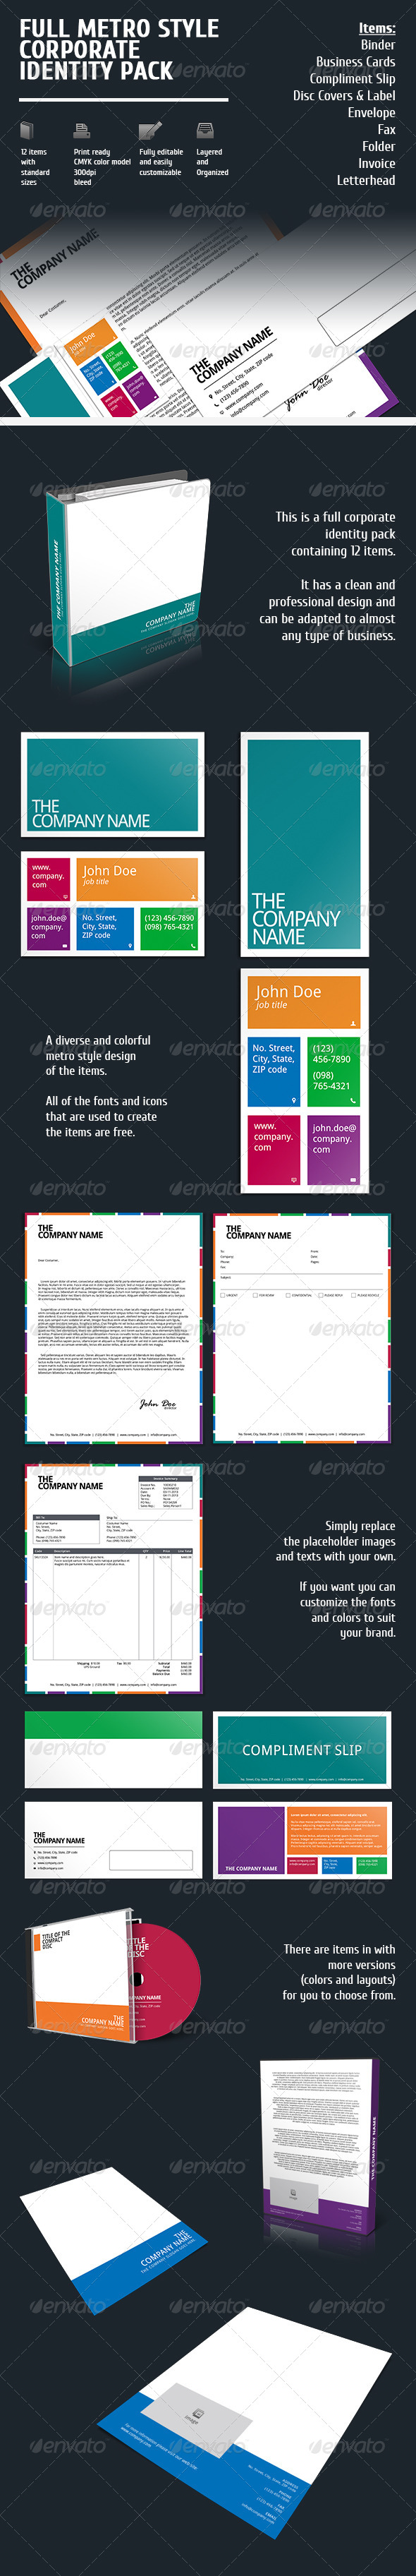 GraphicRiver Full Corporate Identity Pack 6091899